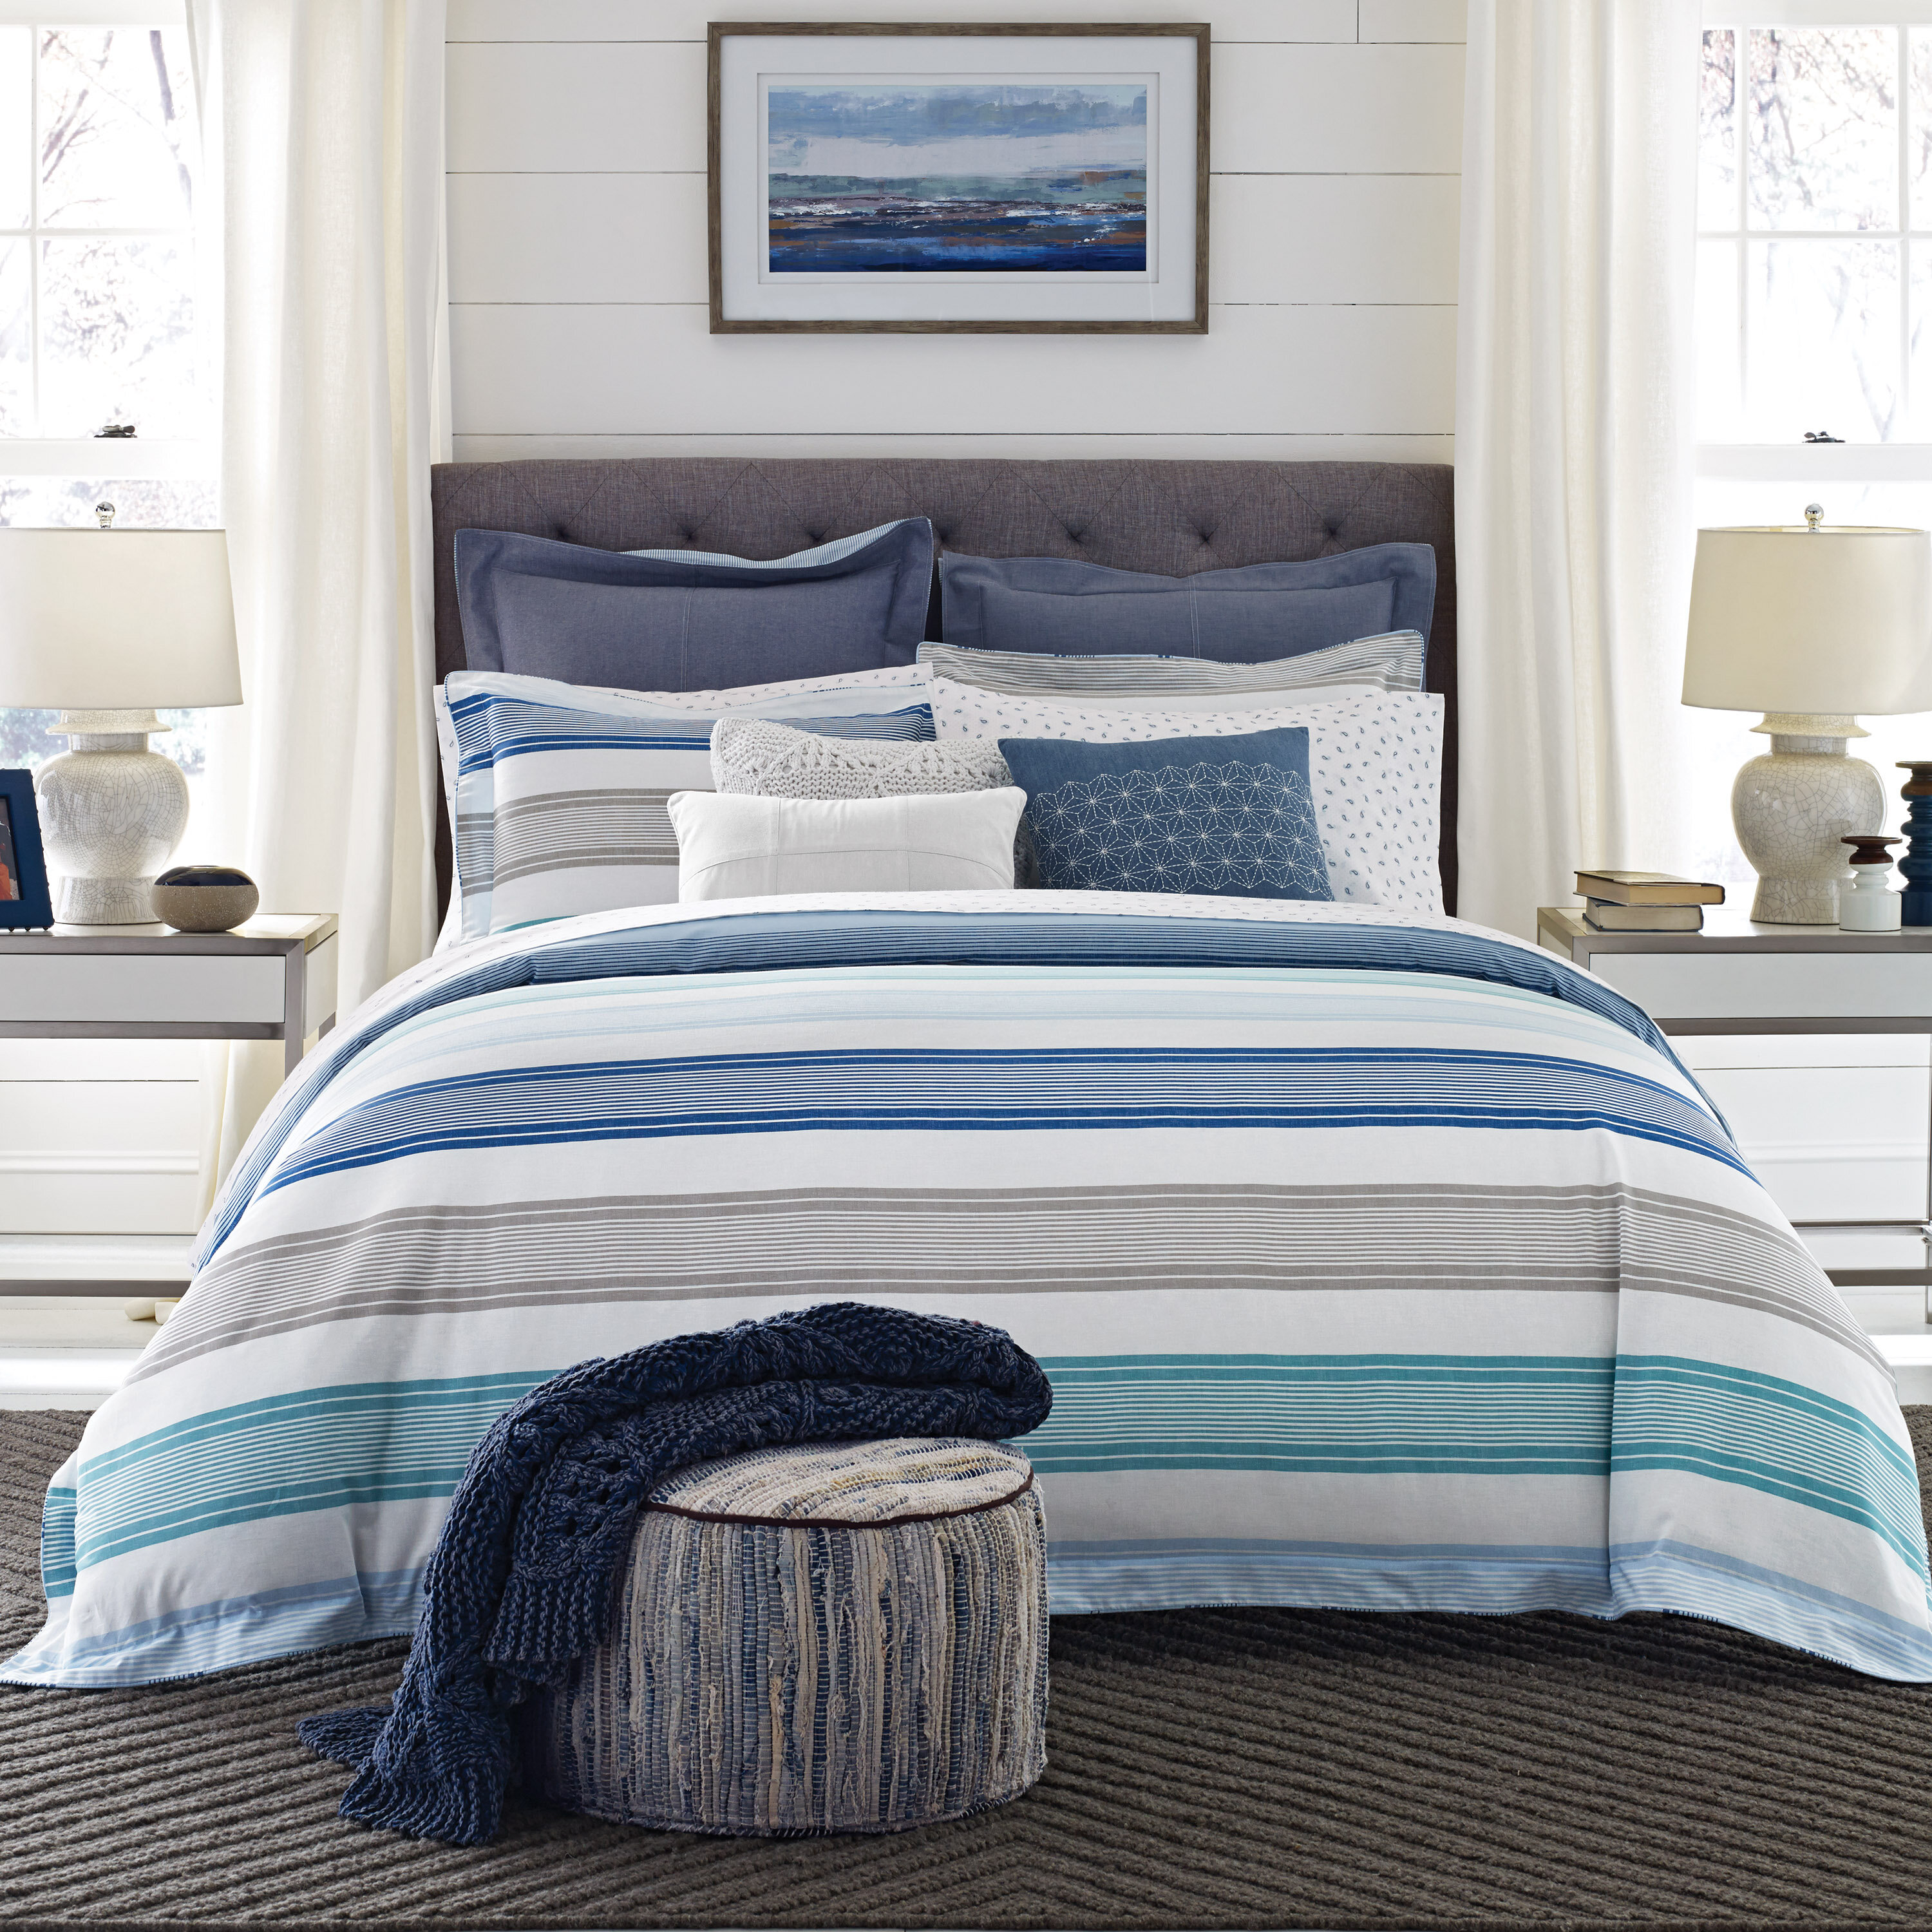 bed pantone studio bedding and color blinds bedroom home max bedrooms pin